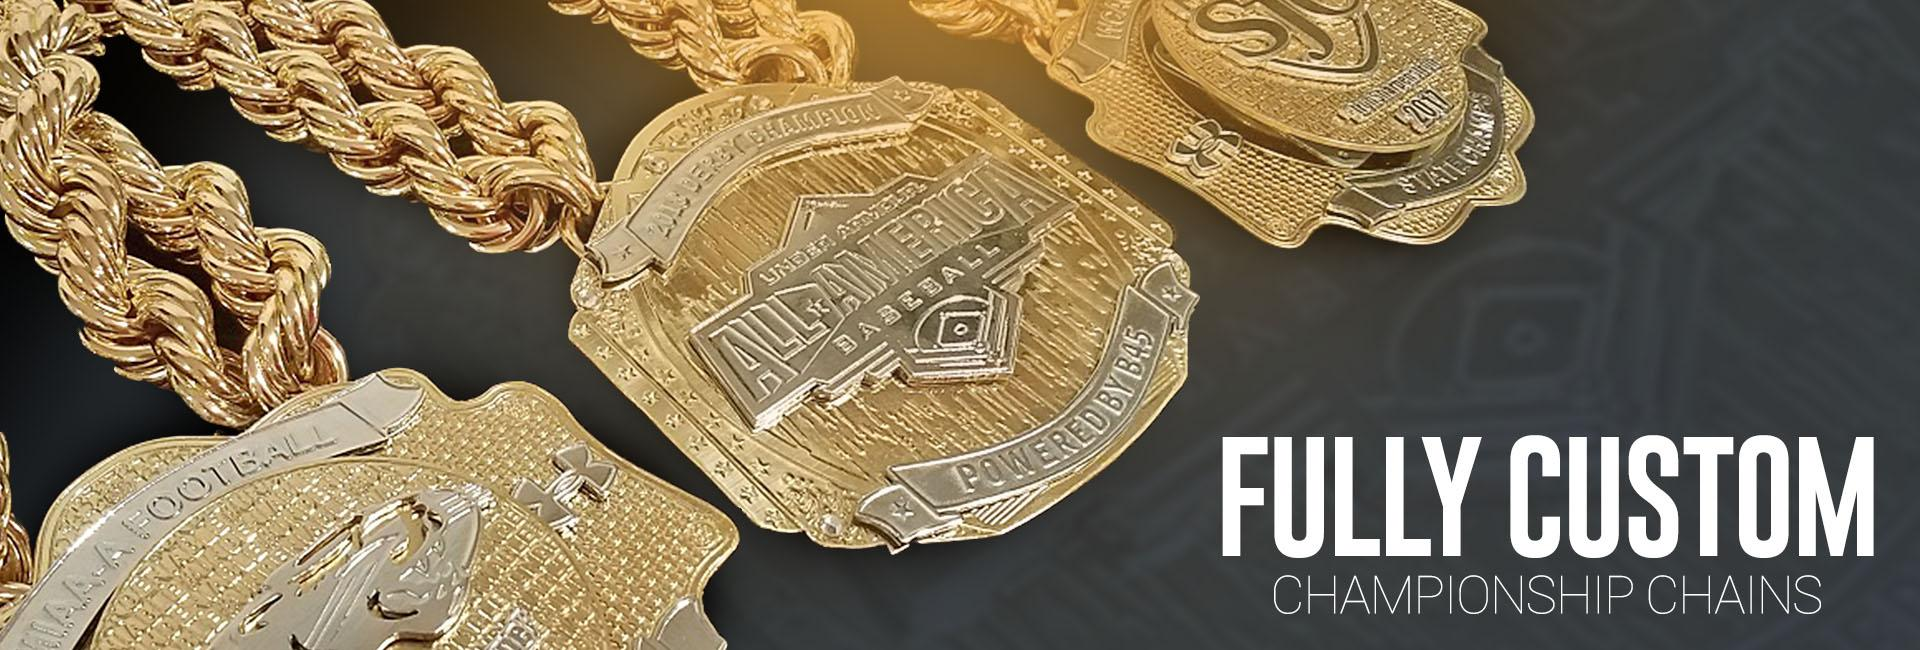 Fully Custom Championship Chains